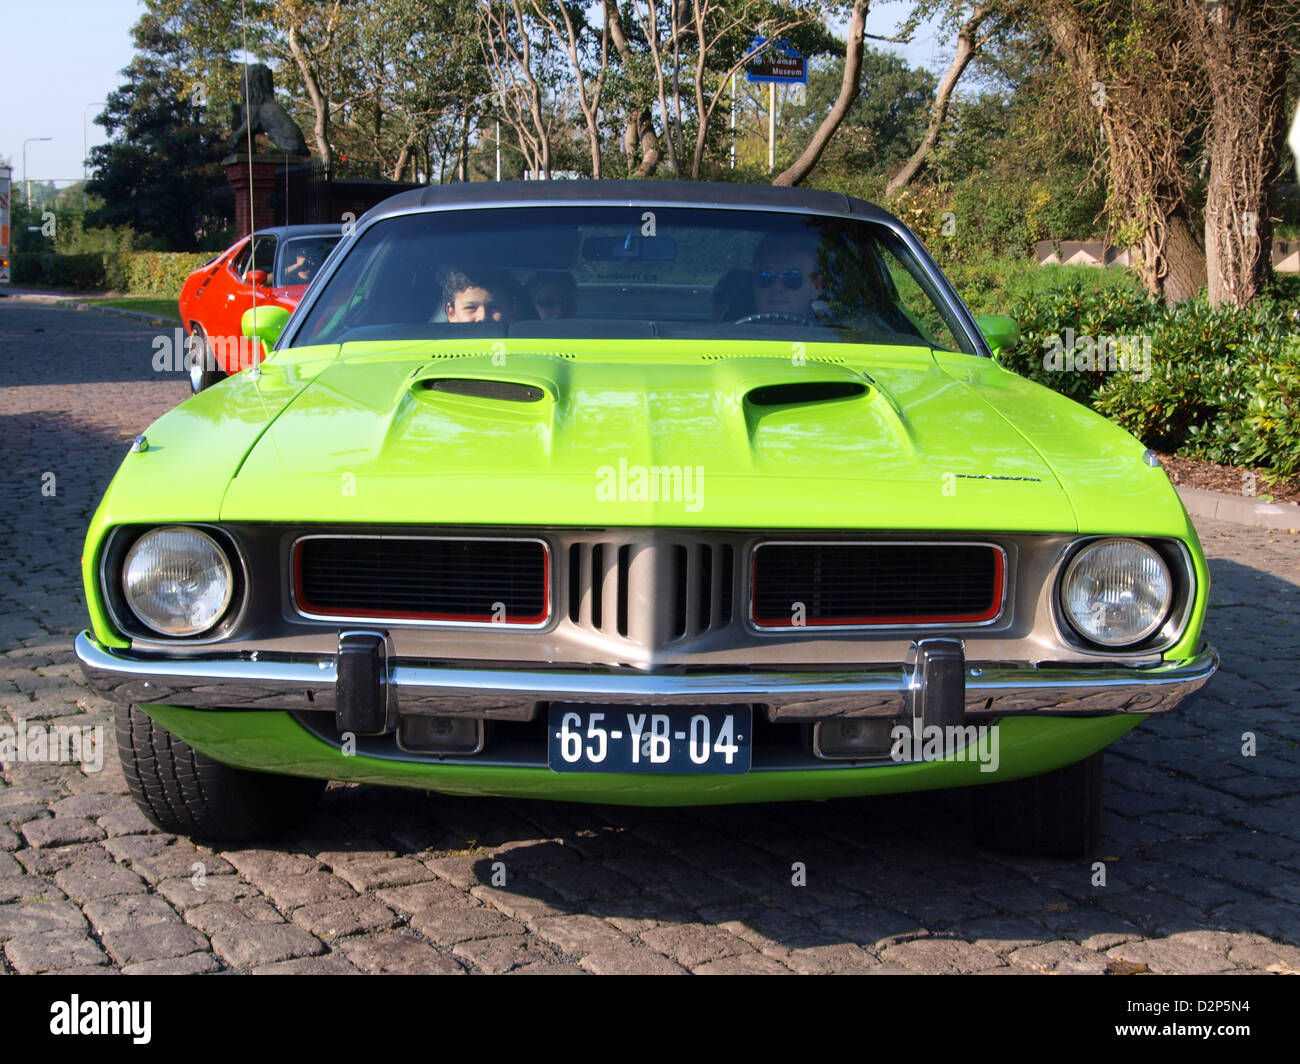 1973 Plymouth Barracuda Stock Photo: 53347872 - Alamy